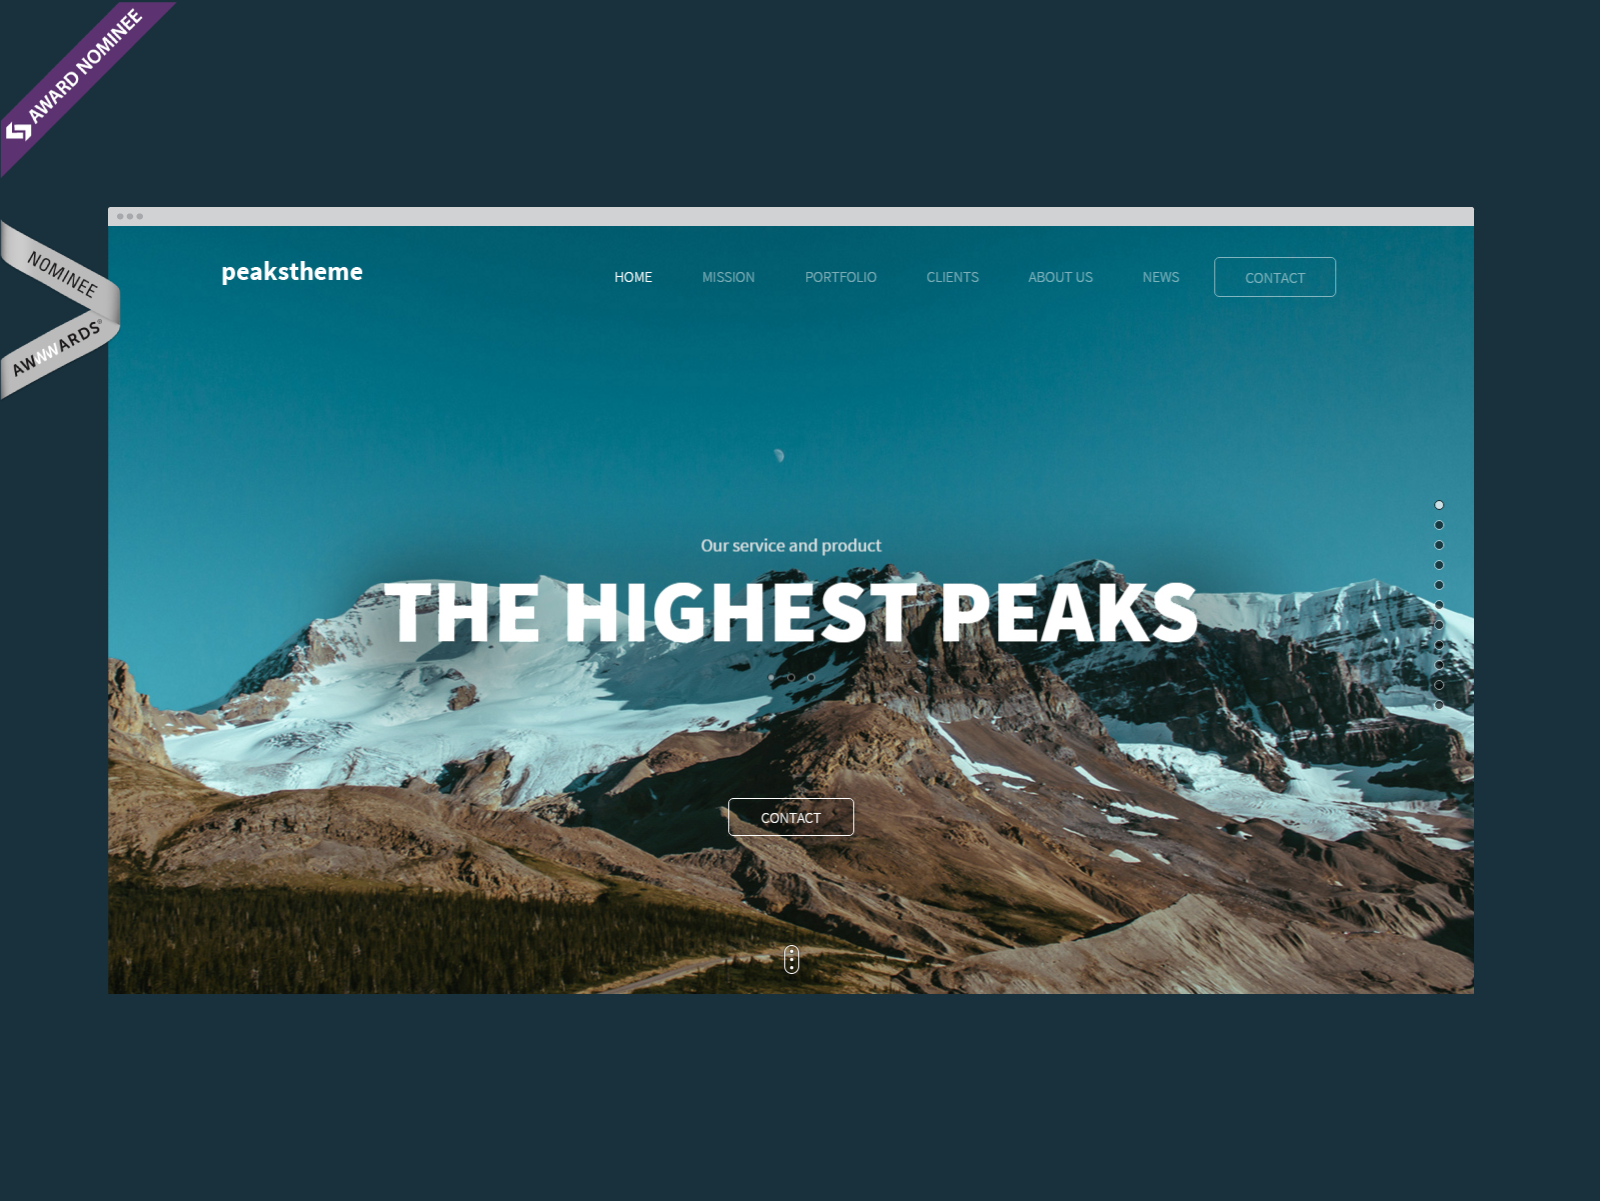 """Peaks"" has been nominated for ""Website of the day"" award at Awwwards.com – worlds most recognized web design award website:  http://www.awwwards.com/best-websites/peaks-digital-agency-template/"